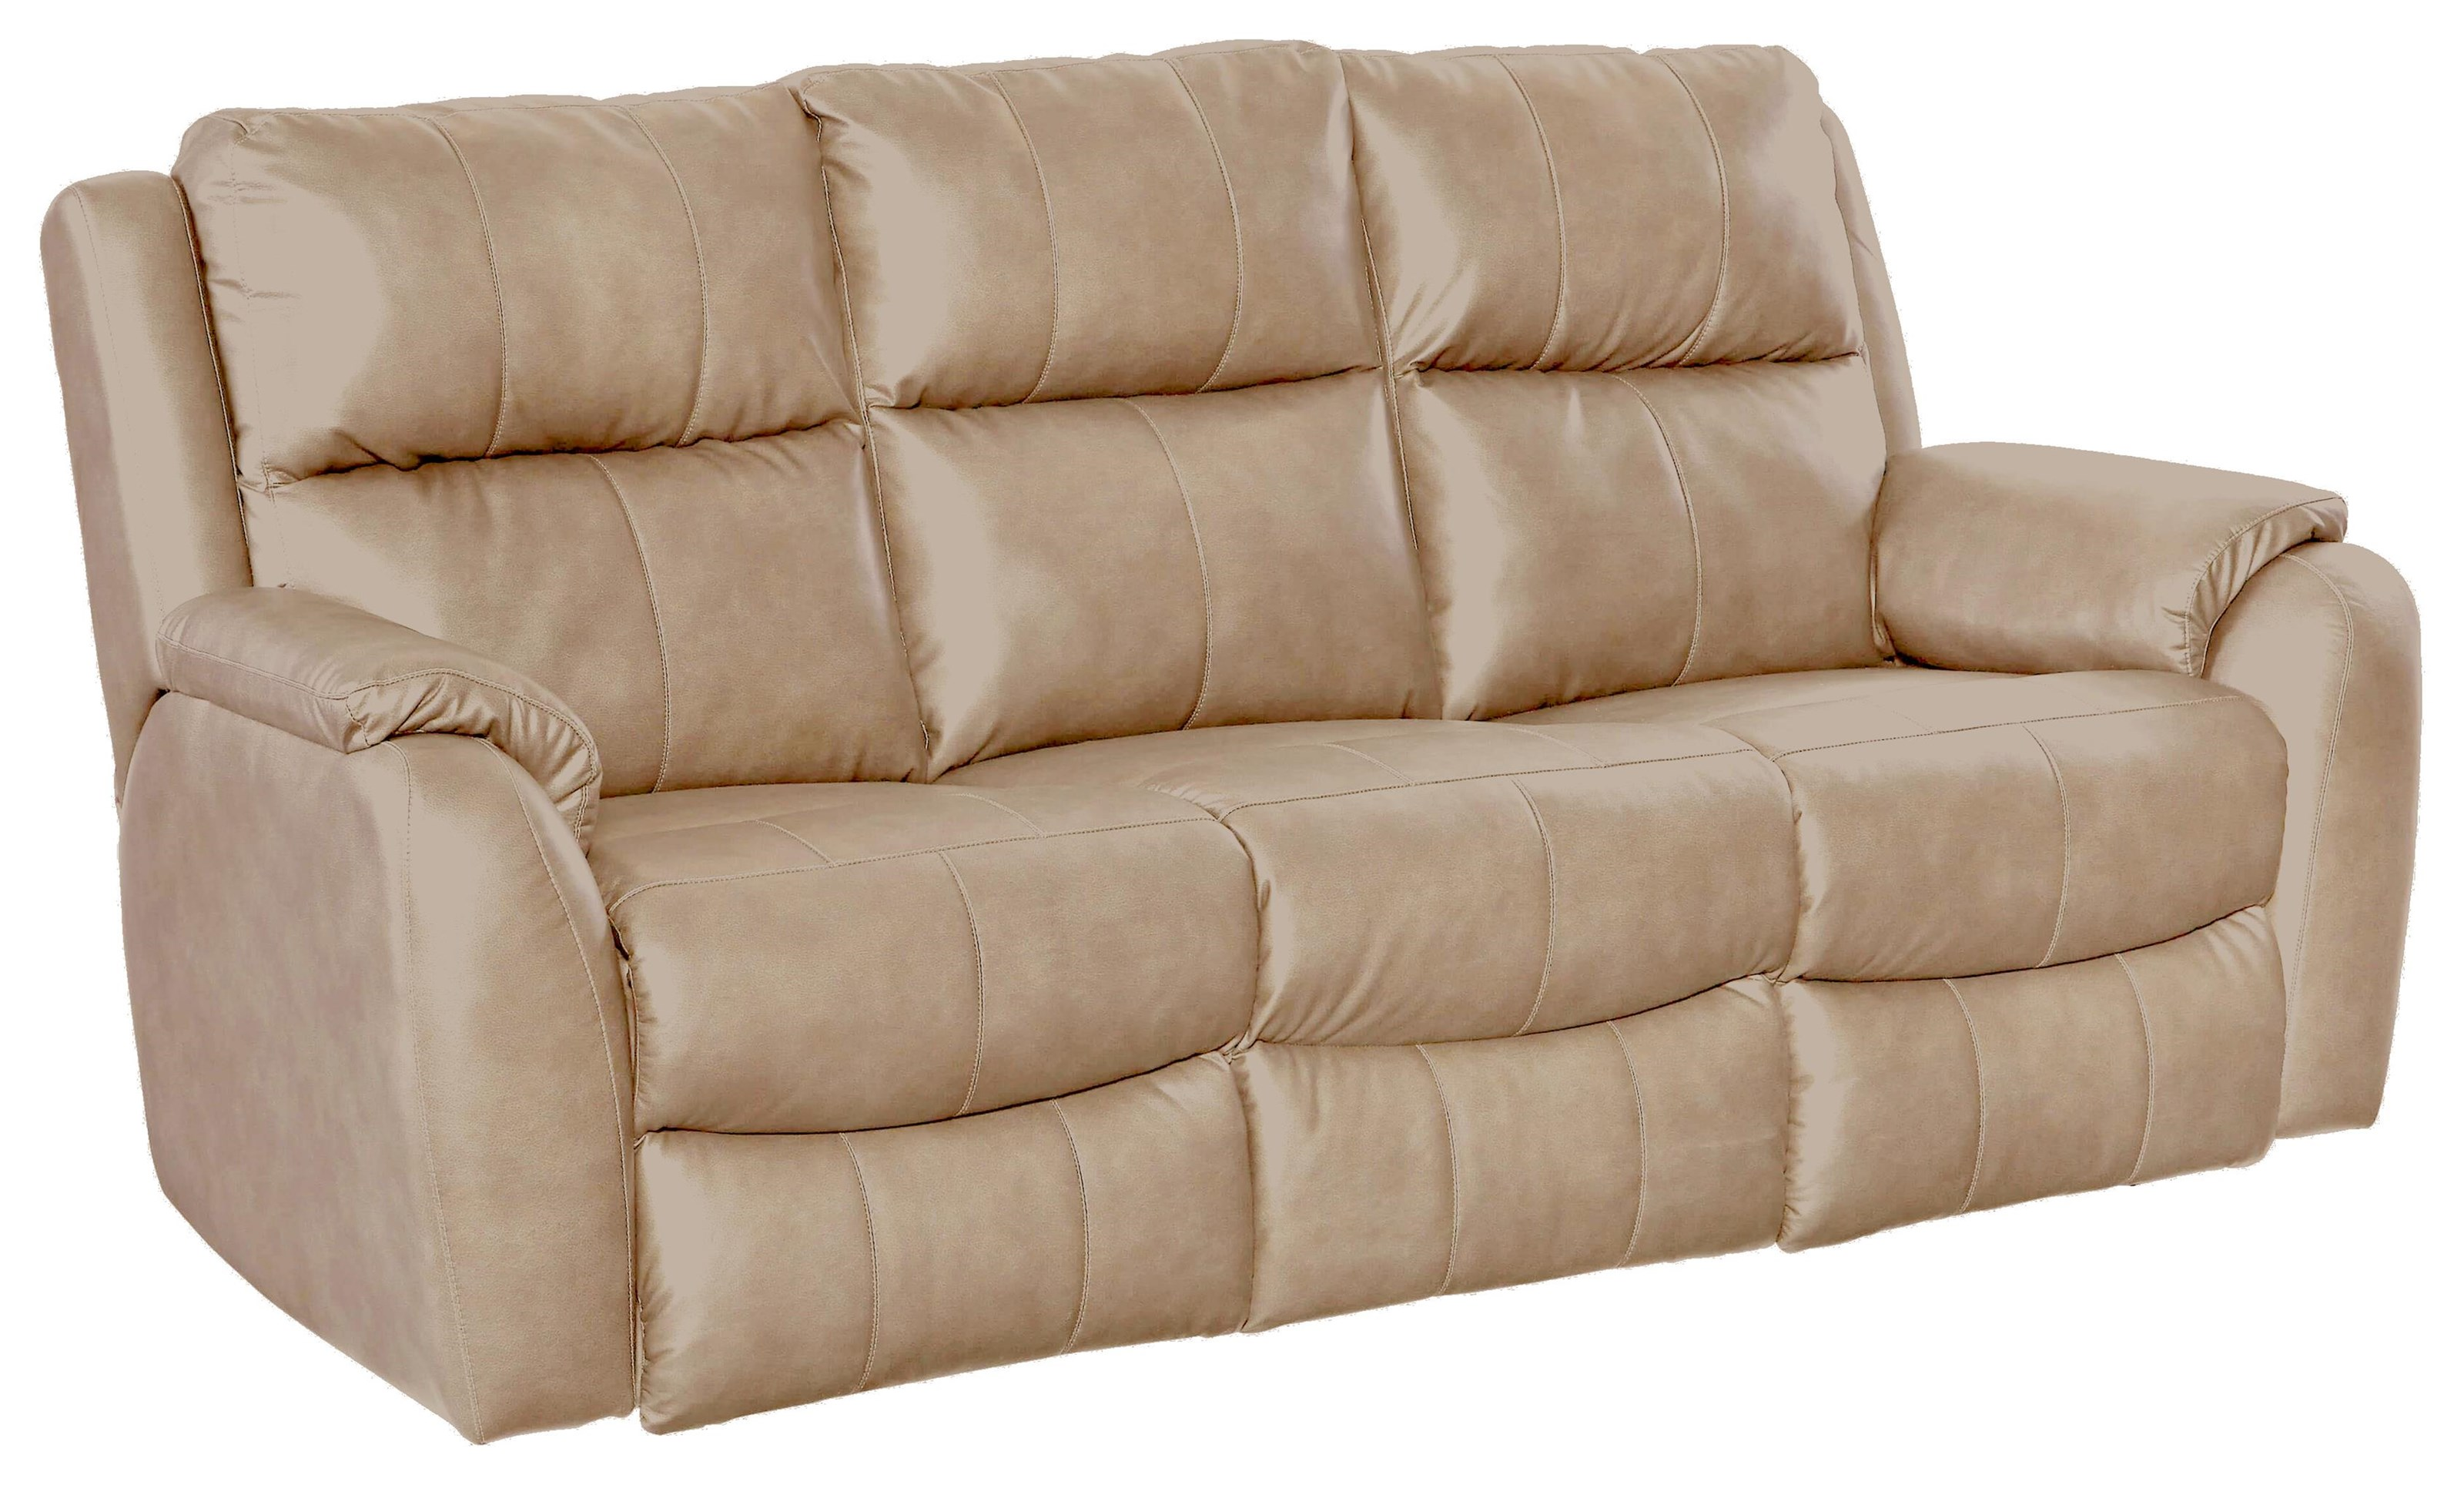 Marquis Manual Sofa by Southern Motion at Johnny Janosik